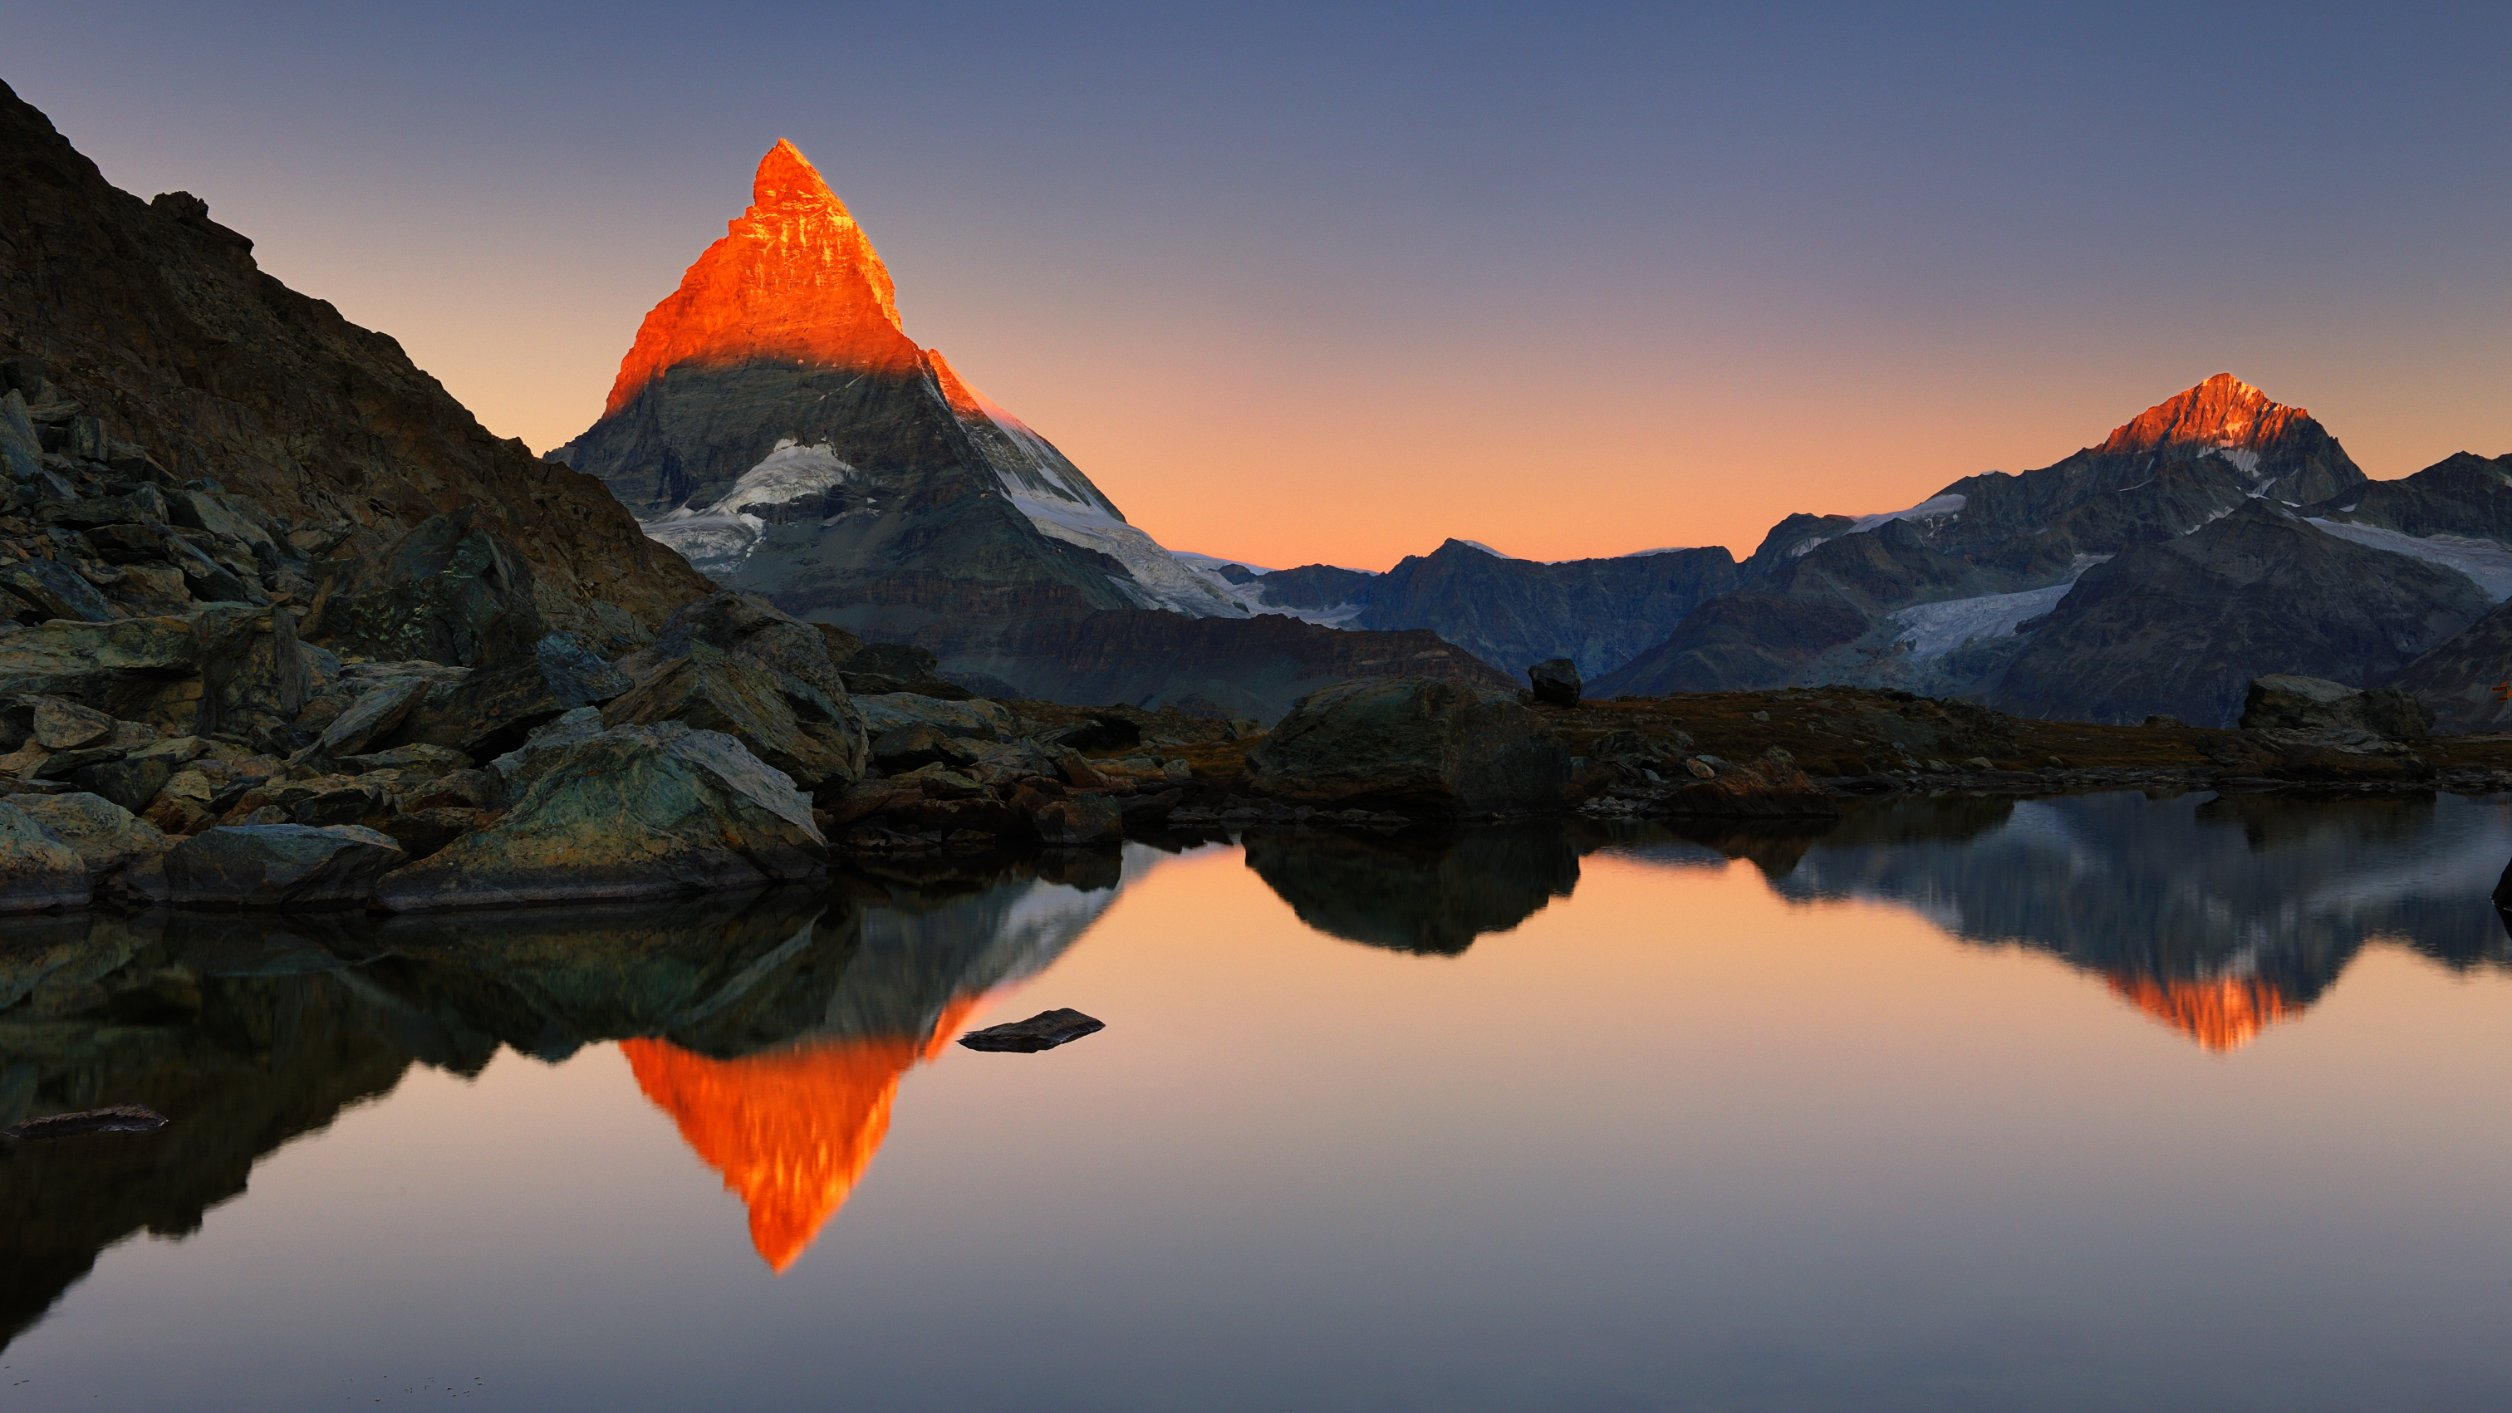 12 iconic mountains from mount fuji to the matterhorn cnn travel